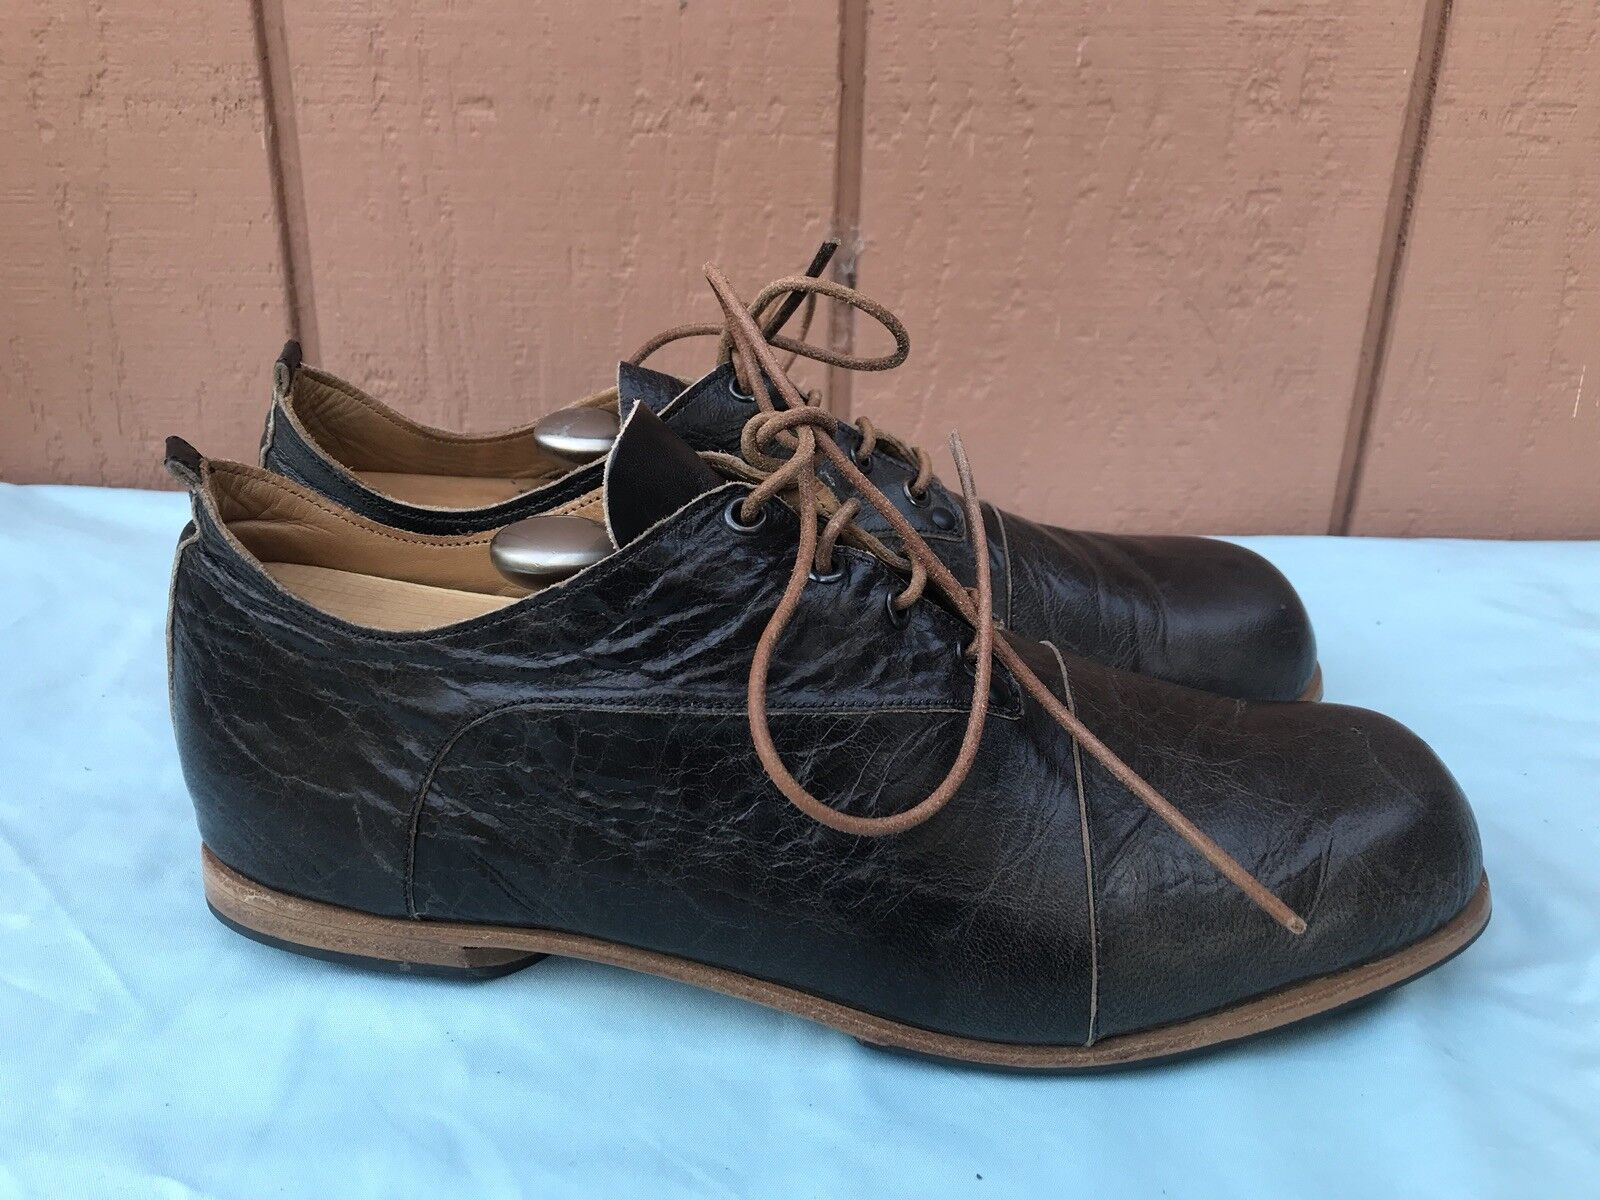 RARE EUC CYDWOQ 45 Men's US 11 Brown Leather Lace Up Bumper shoes Sneaker AY